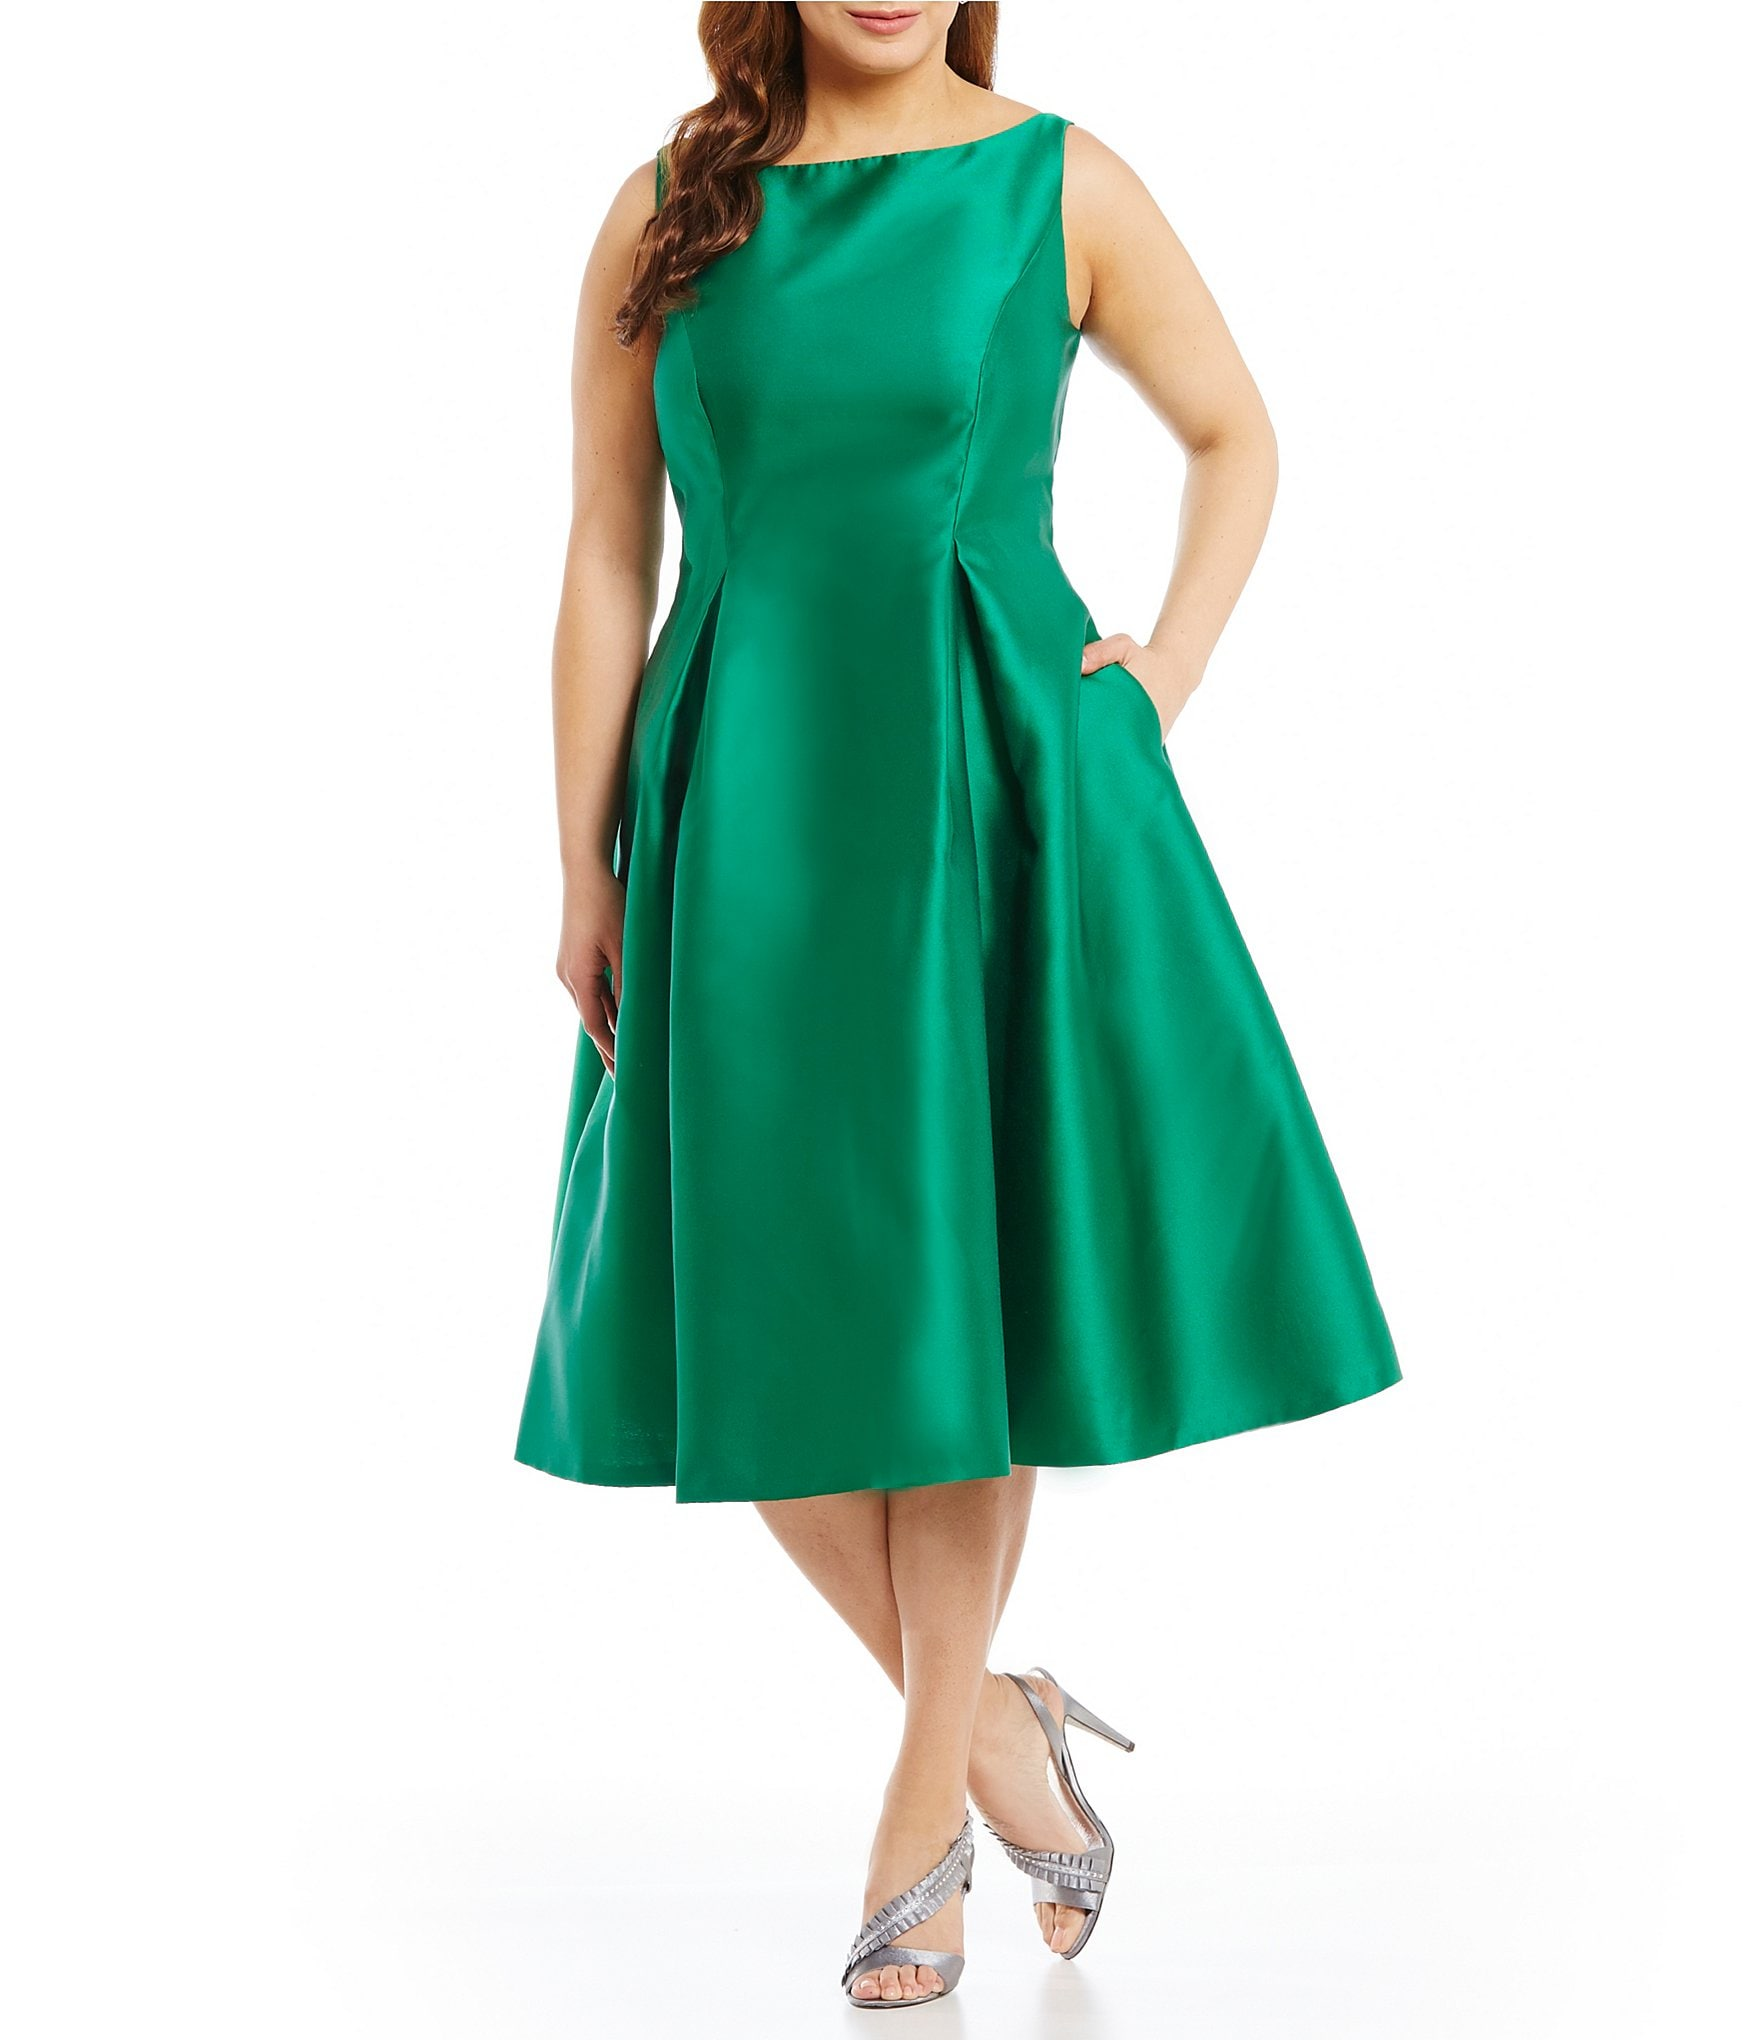 What Color Shoes To Wear With A Emerald Green Dress